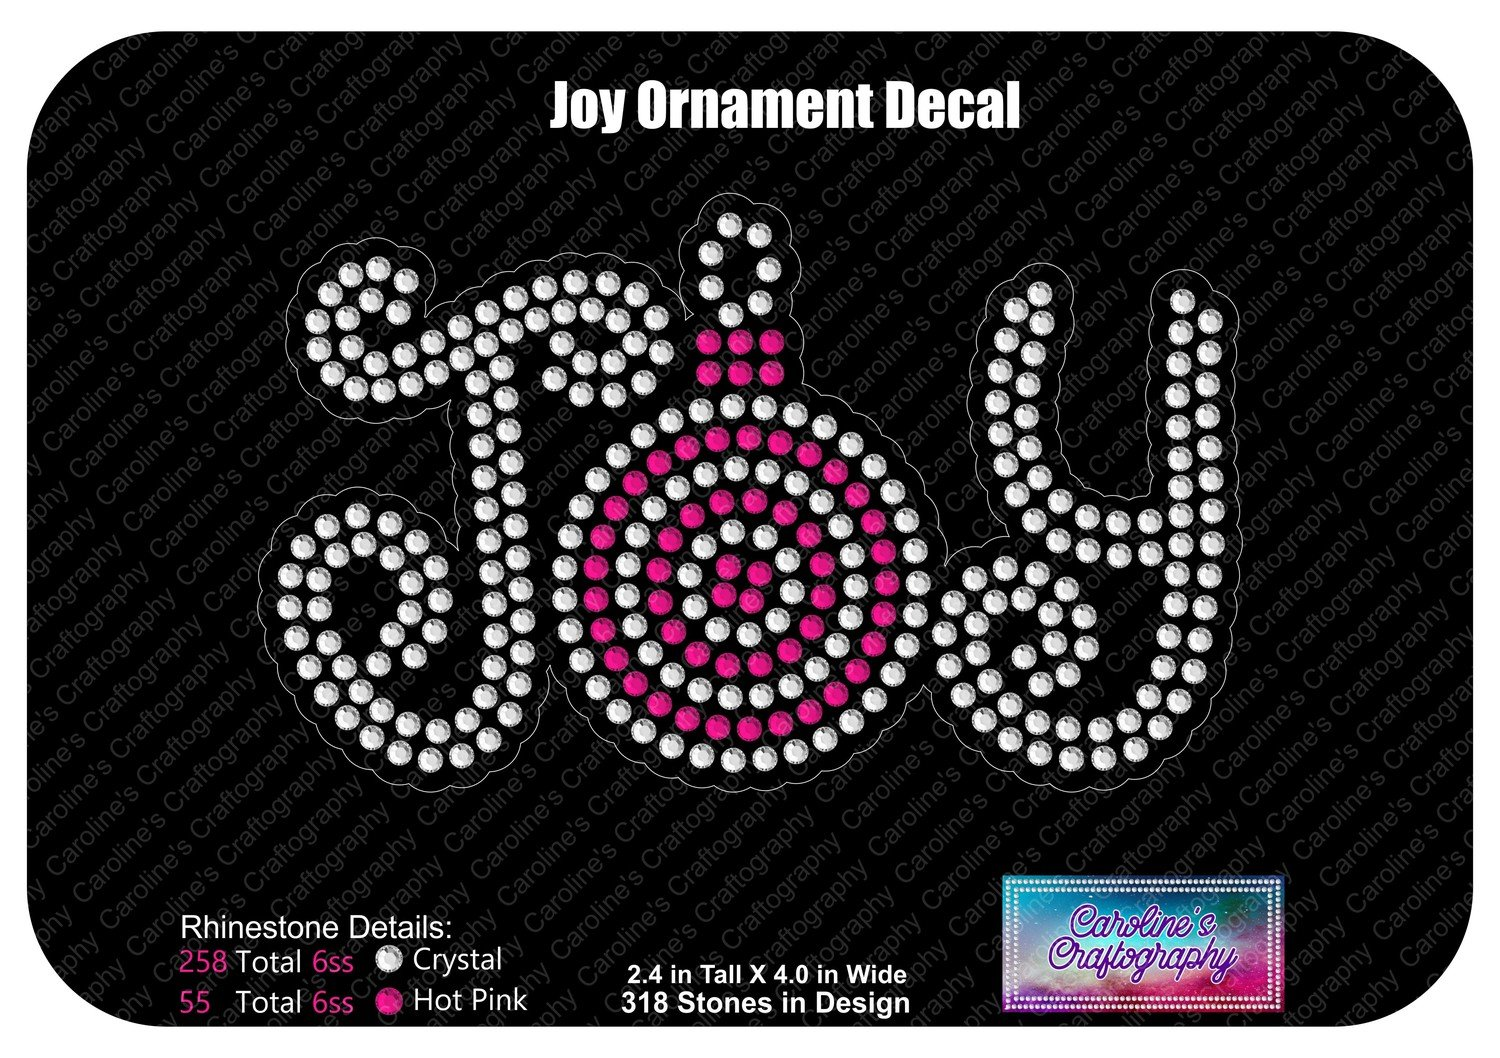 Joy Ornament Decal